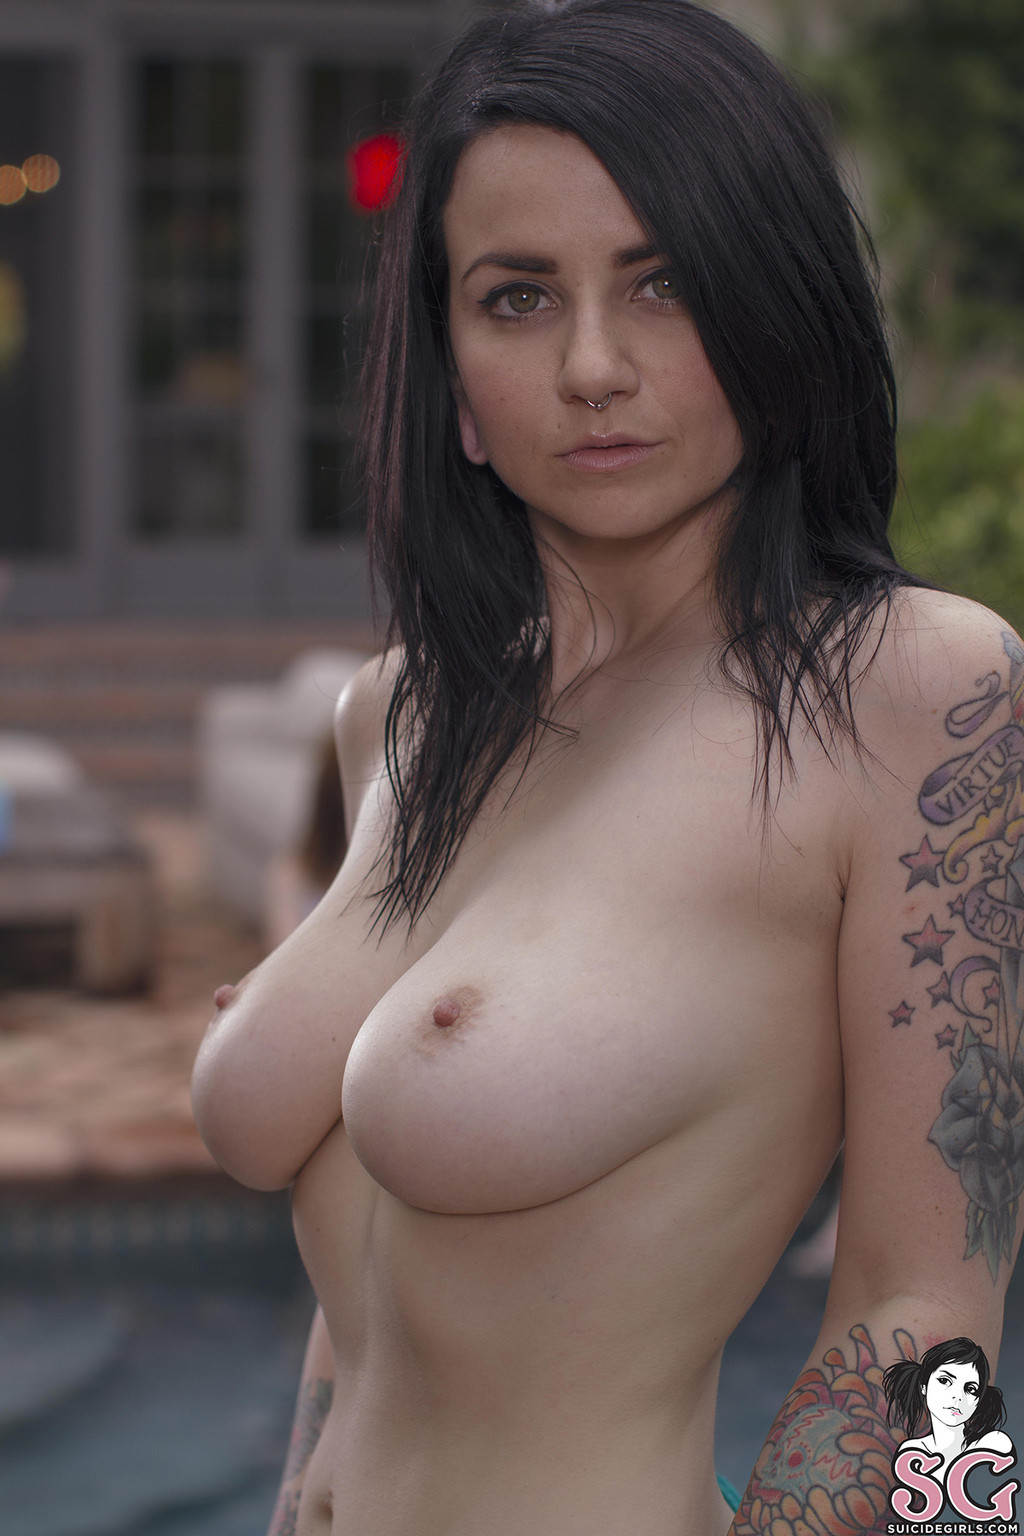 Suicide girls free